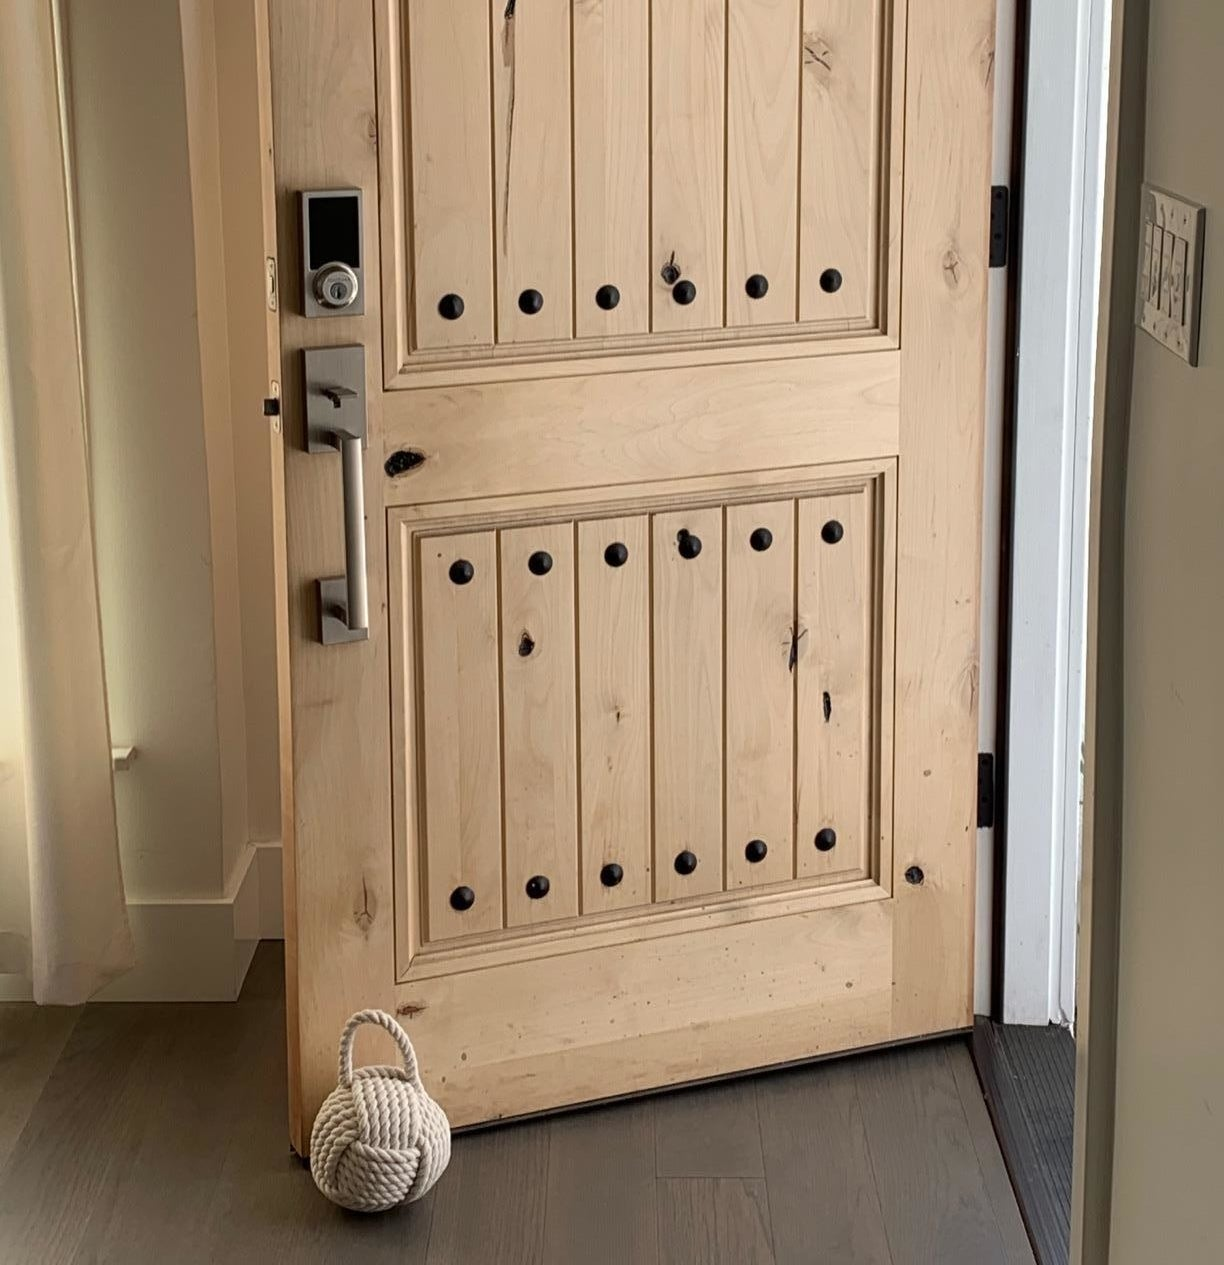 reviewer image of the ivory Creative Co-Op Nautical Rope Knot Cotton Door Stop holding a customer's front door open